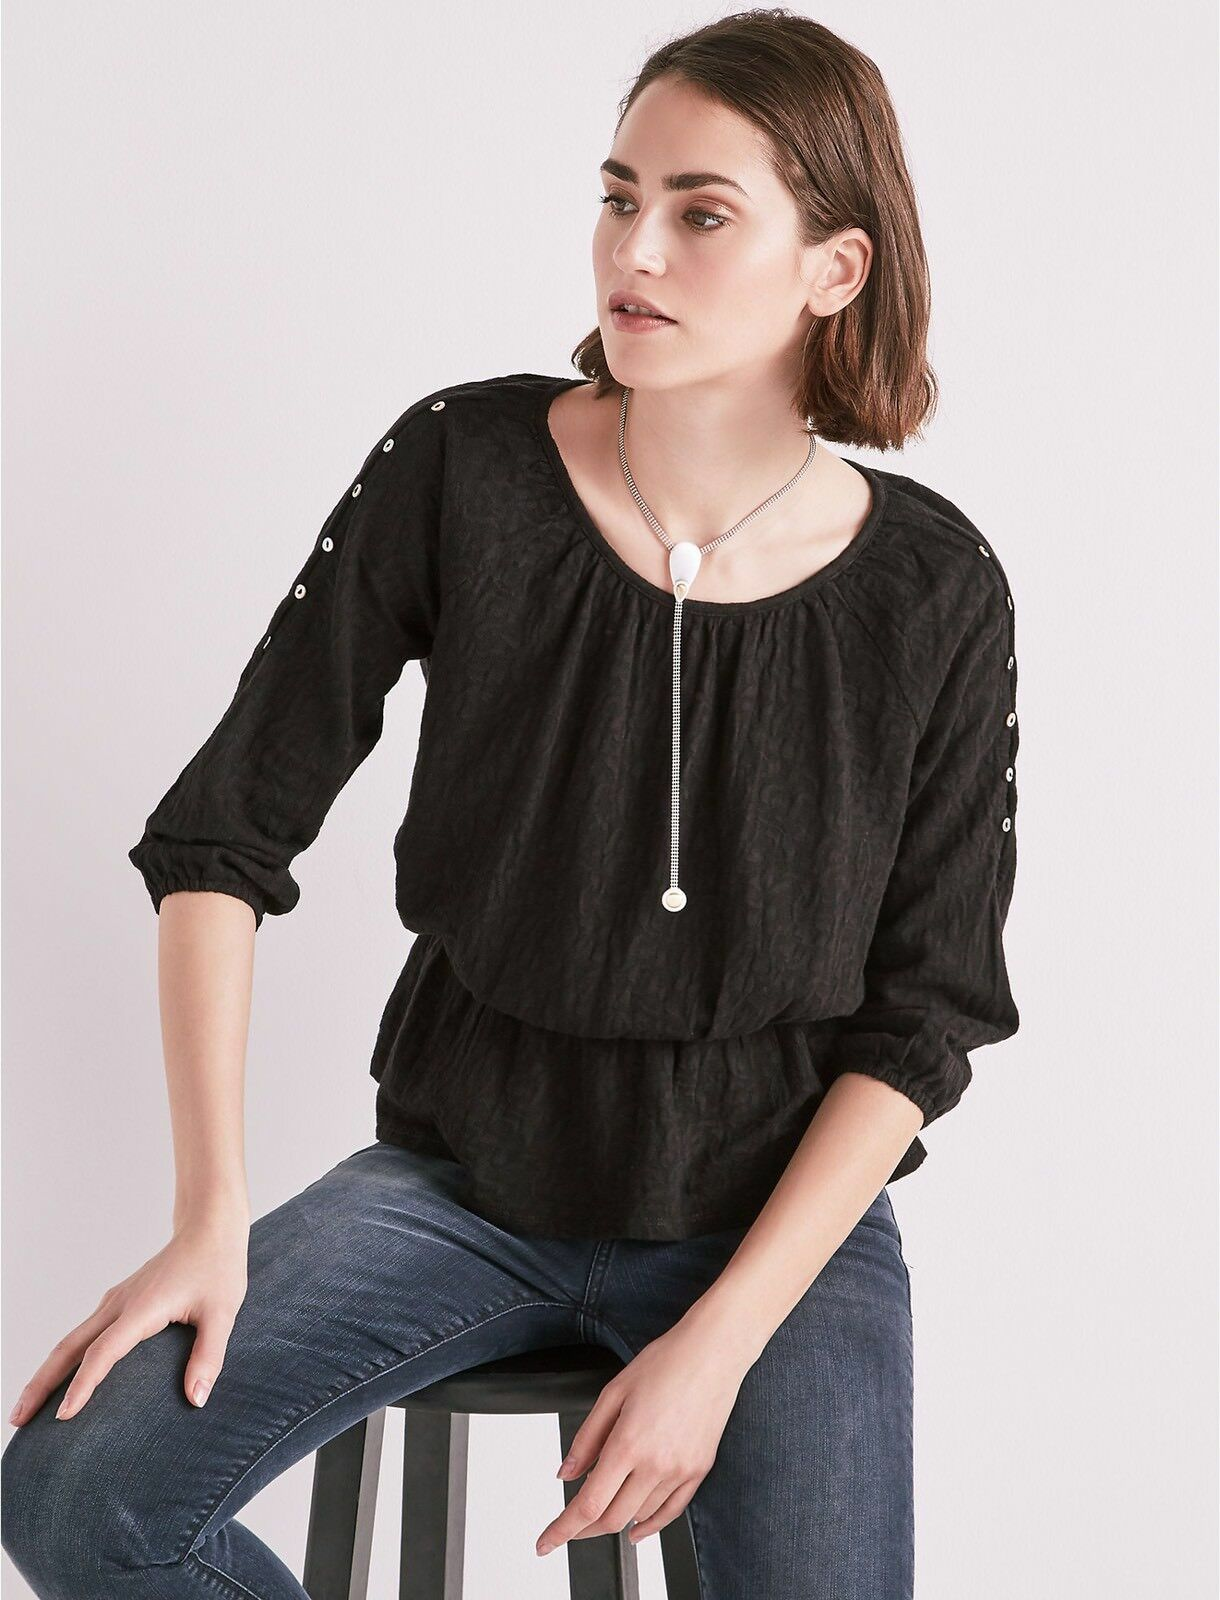 Lucky Brand Top L schwarz Jacquard Cold Shoulder Ruched 3 4 Sleeve damen's NWT